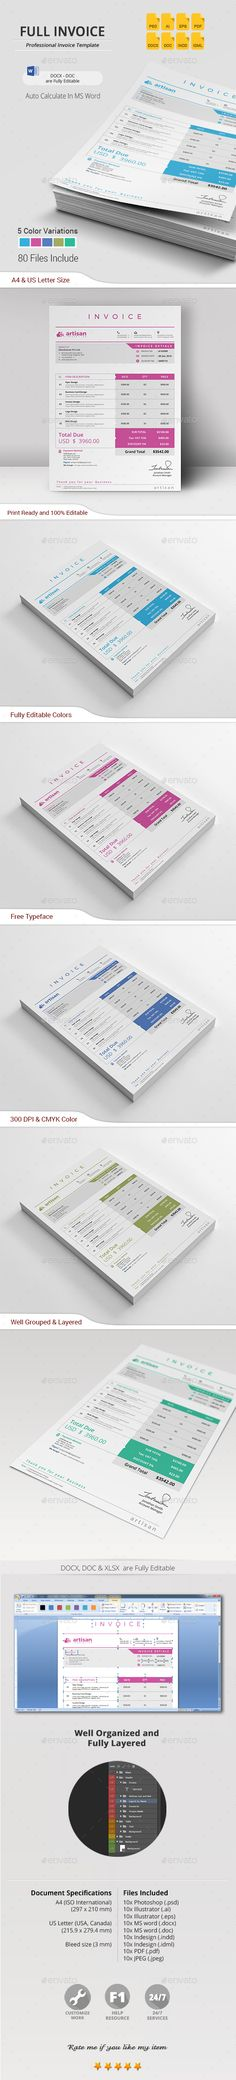 Invoice Template Download http\/\/graphicrivernet\/item\/invoice - product invoice template